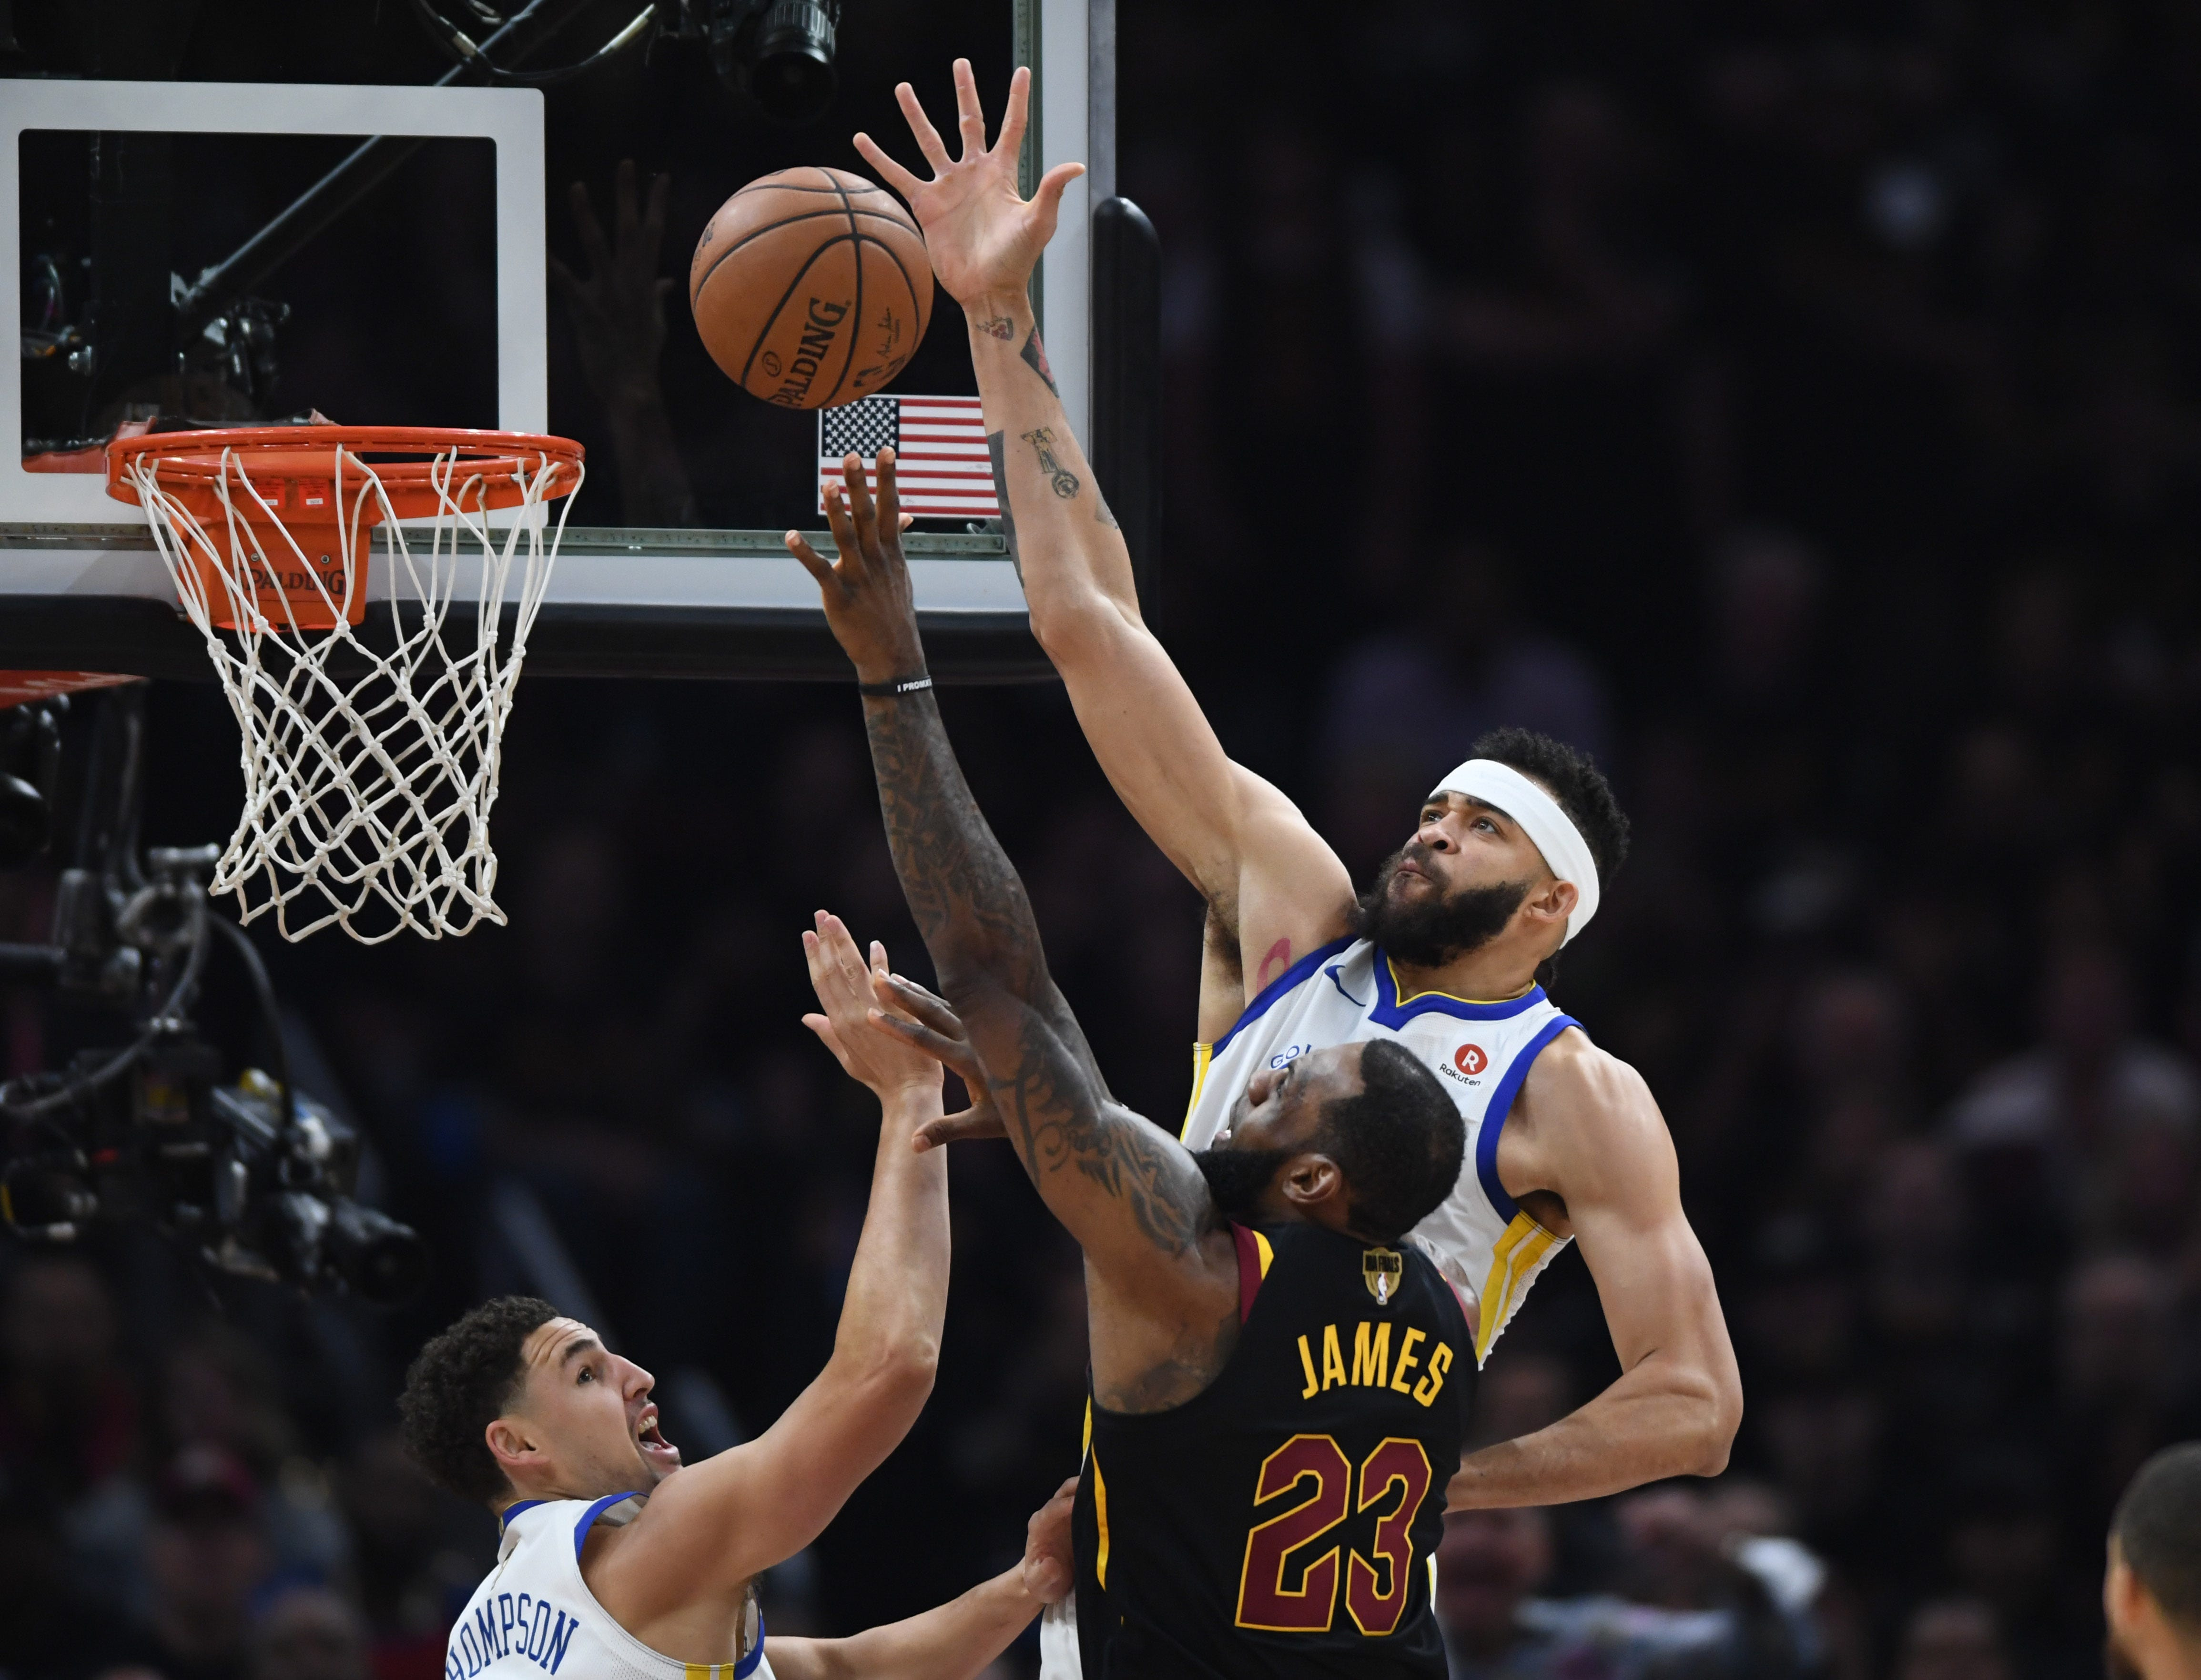 Golden State Warriors center JaVale McGee blocks a shot by Cleveland Cavaliers forward LeBron James during the first quarter in Game 3 of the 2018 NBA Finals at Quicken Loans Arena in Cleveland.